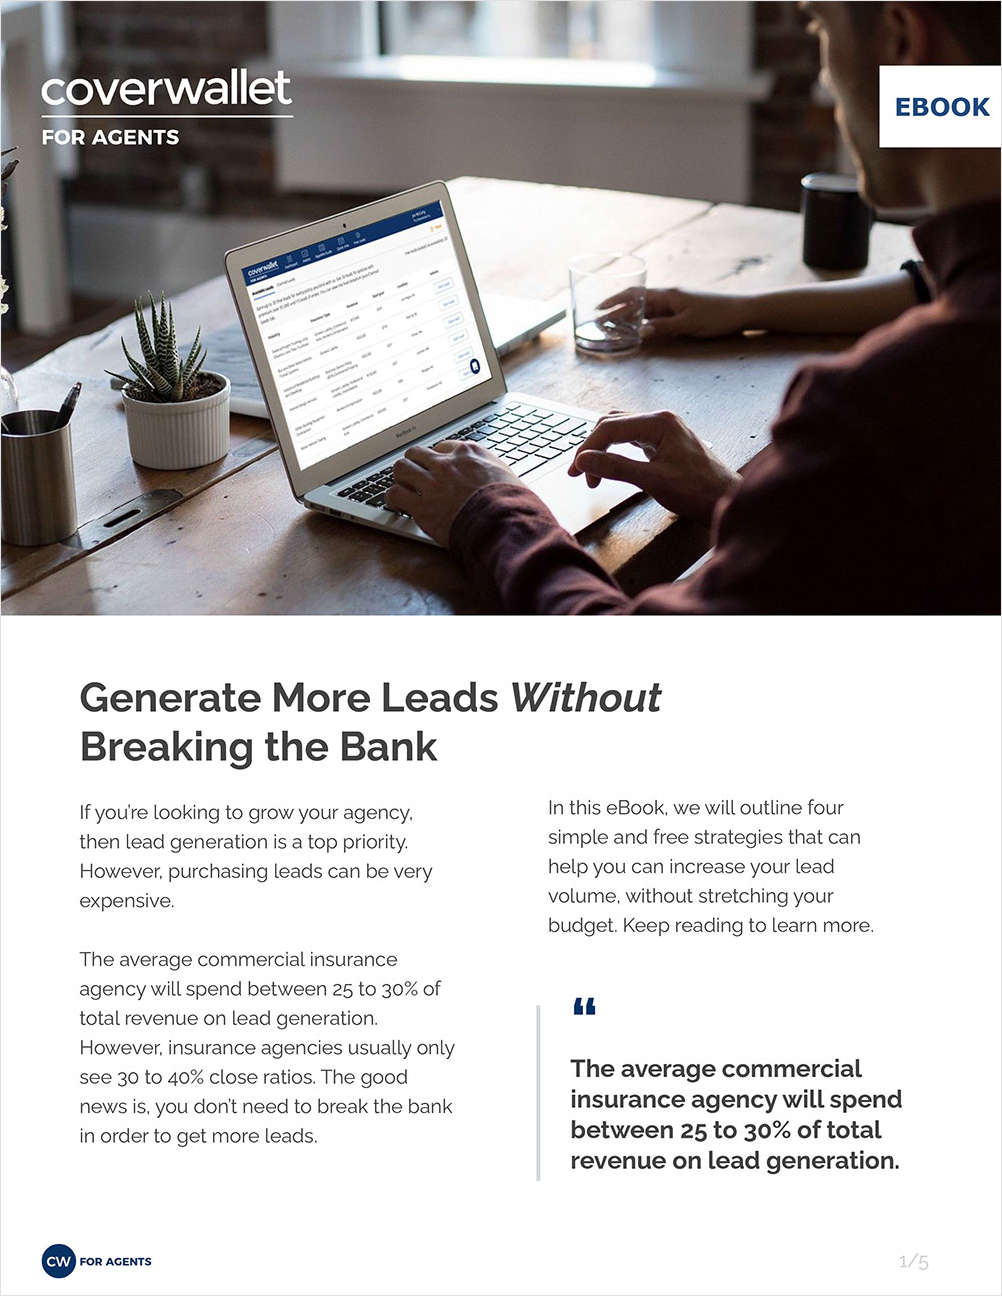 4 Simple Strategies to Generate More Leads Without Breaking the Bank